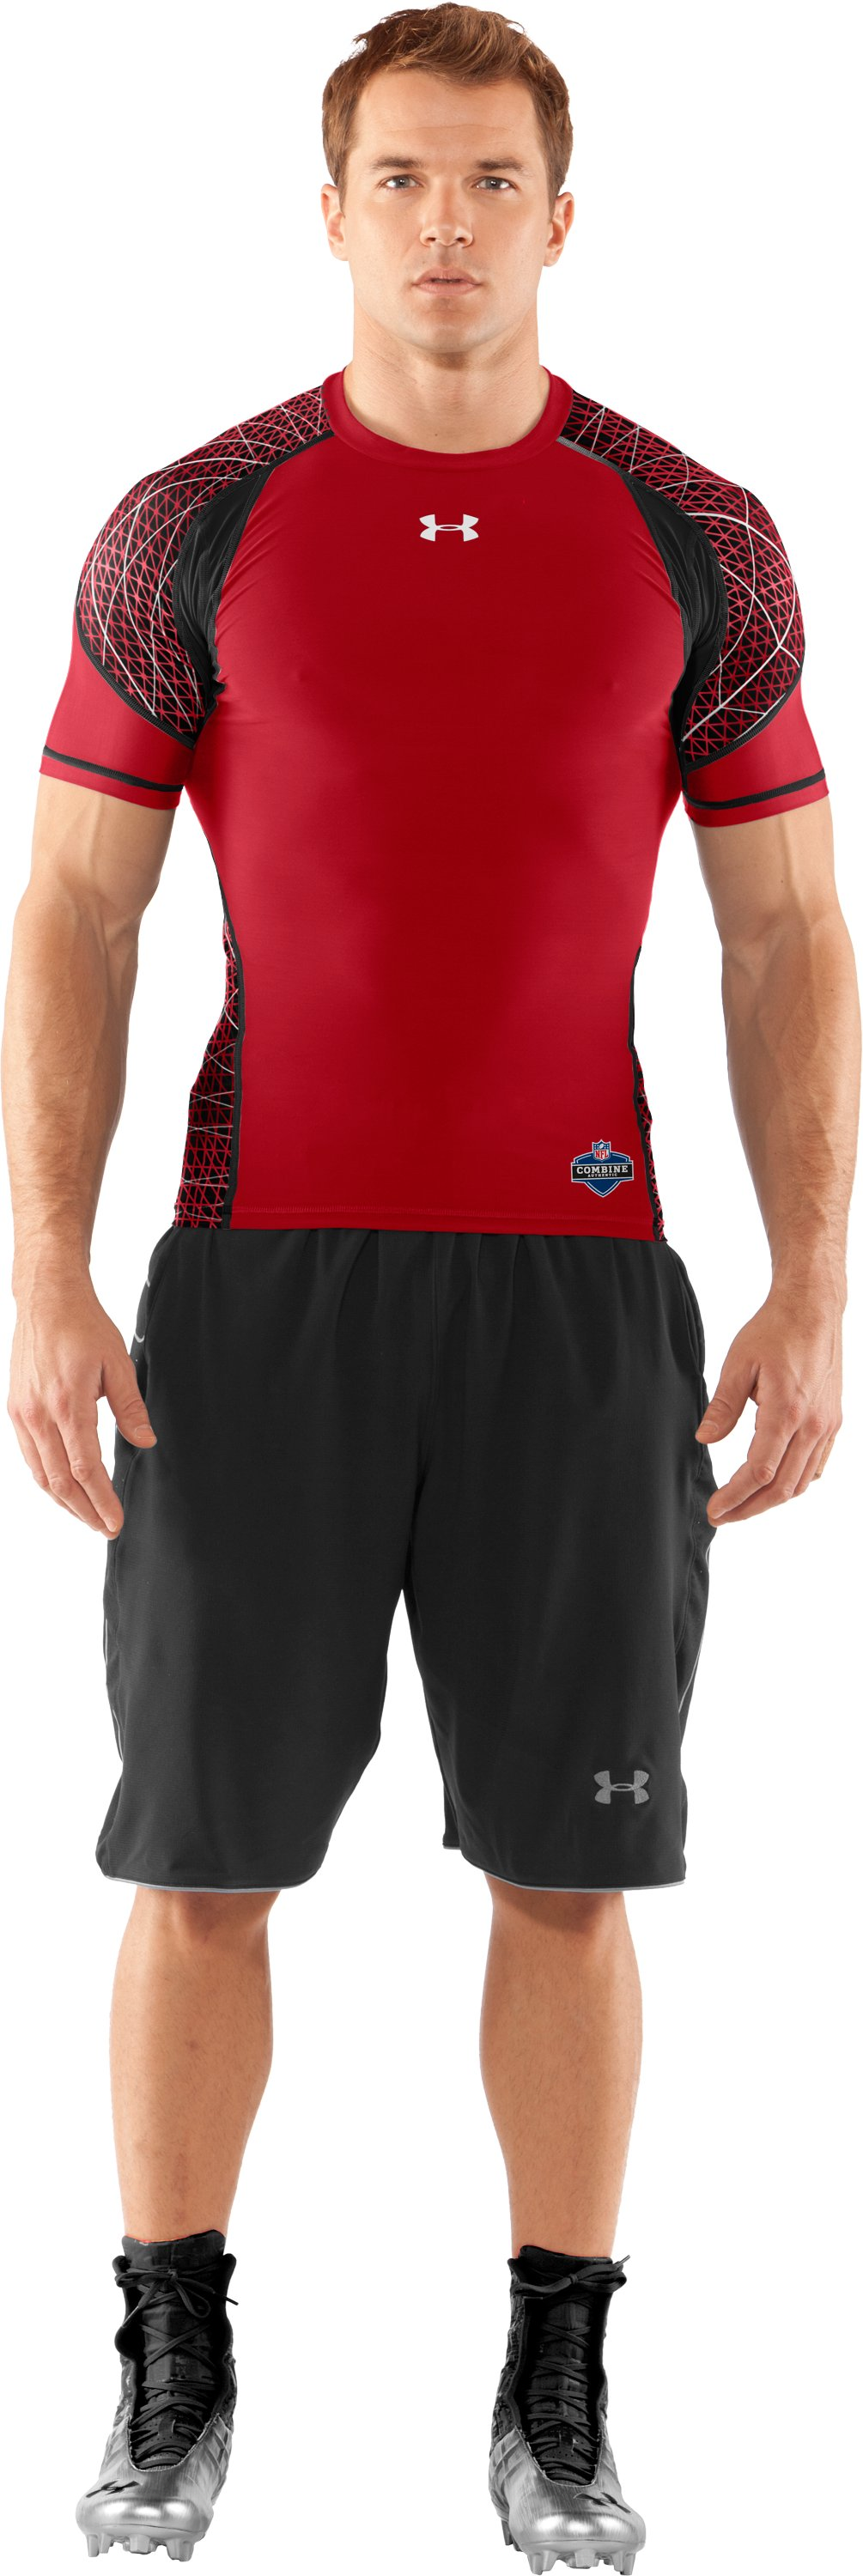 Men's NFL Combine Authentic Warp Speed Short Sleeve, Red, zoomed image